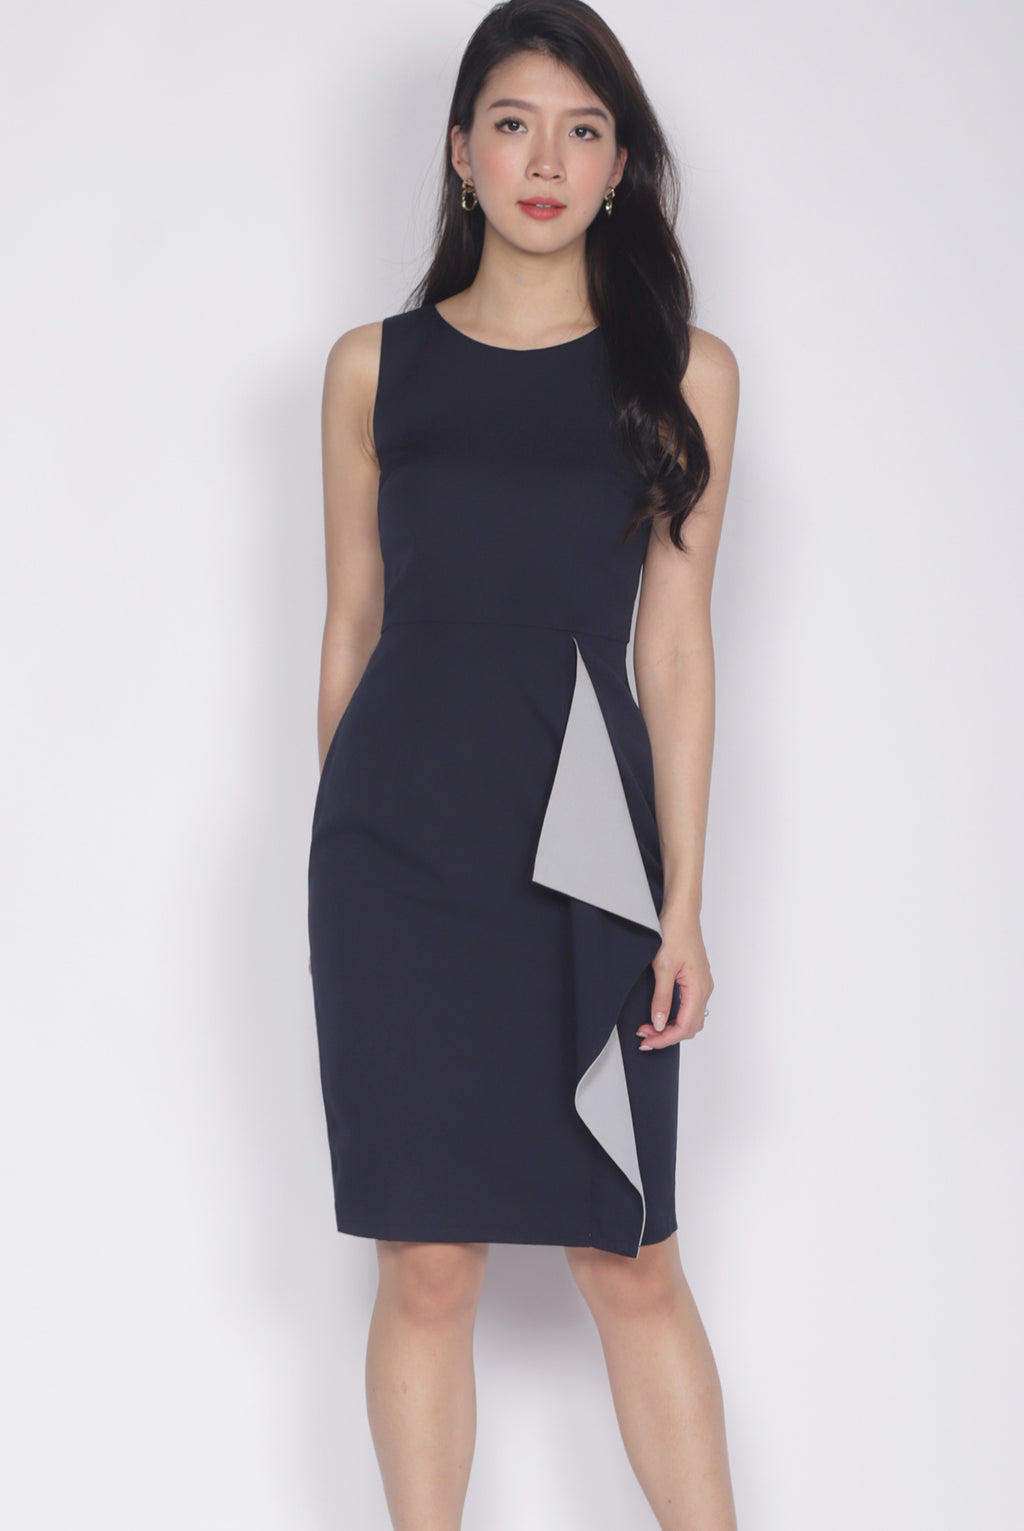 Ninette Waterfall Work Dress In Navy Blue